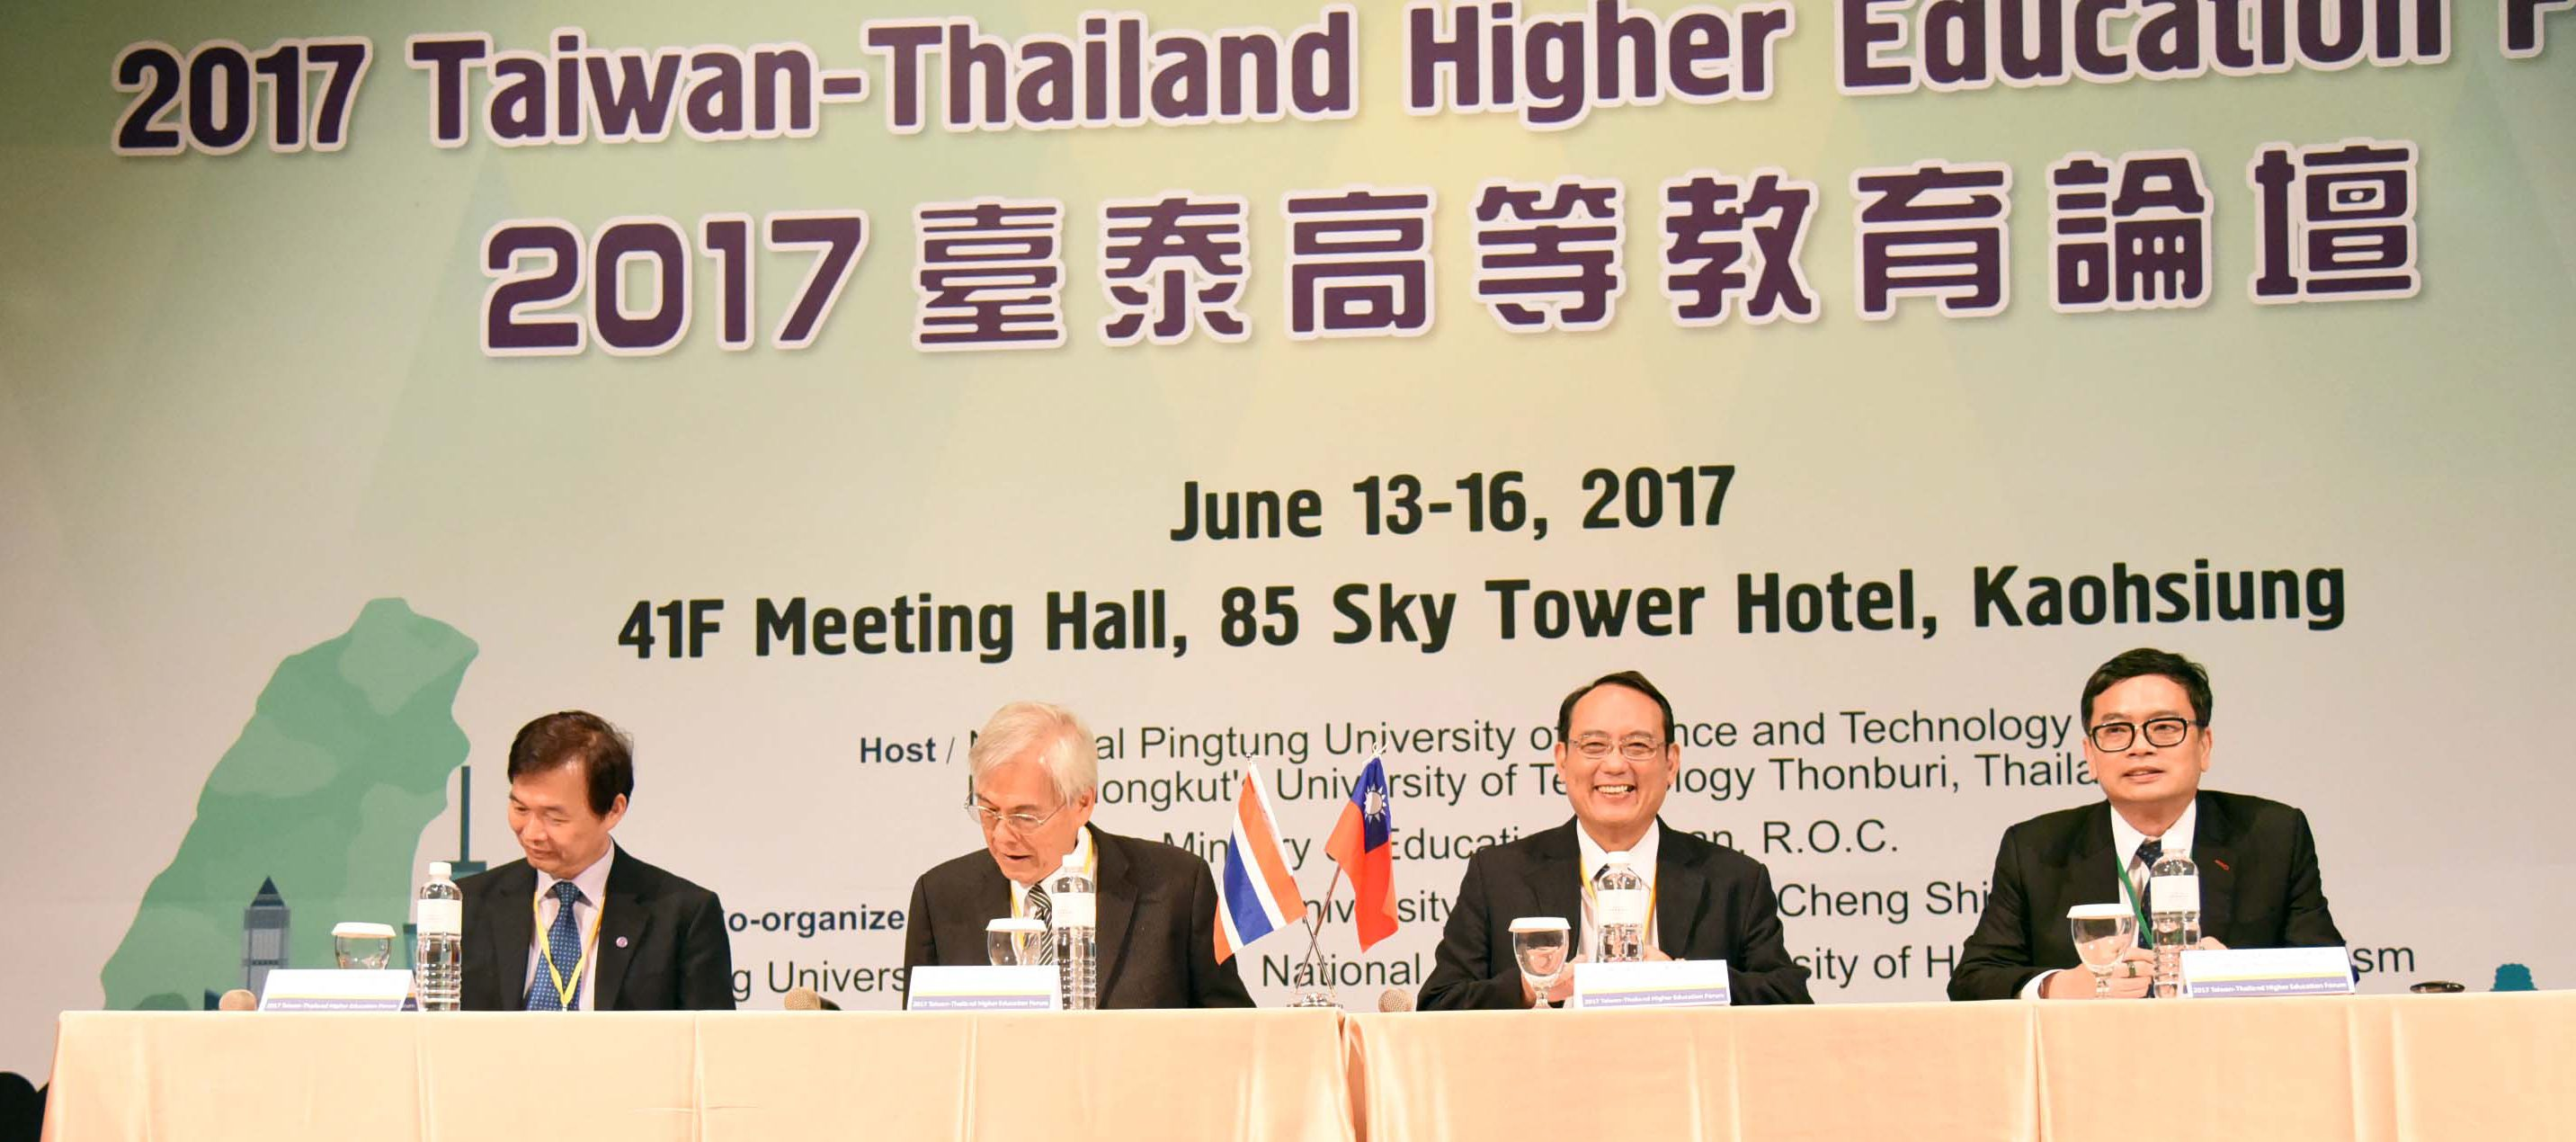 Creating a Southbound Policy Fount of Learning Founded on Taiwan-Thailand Higher Education Cooperation